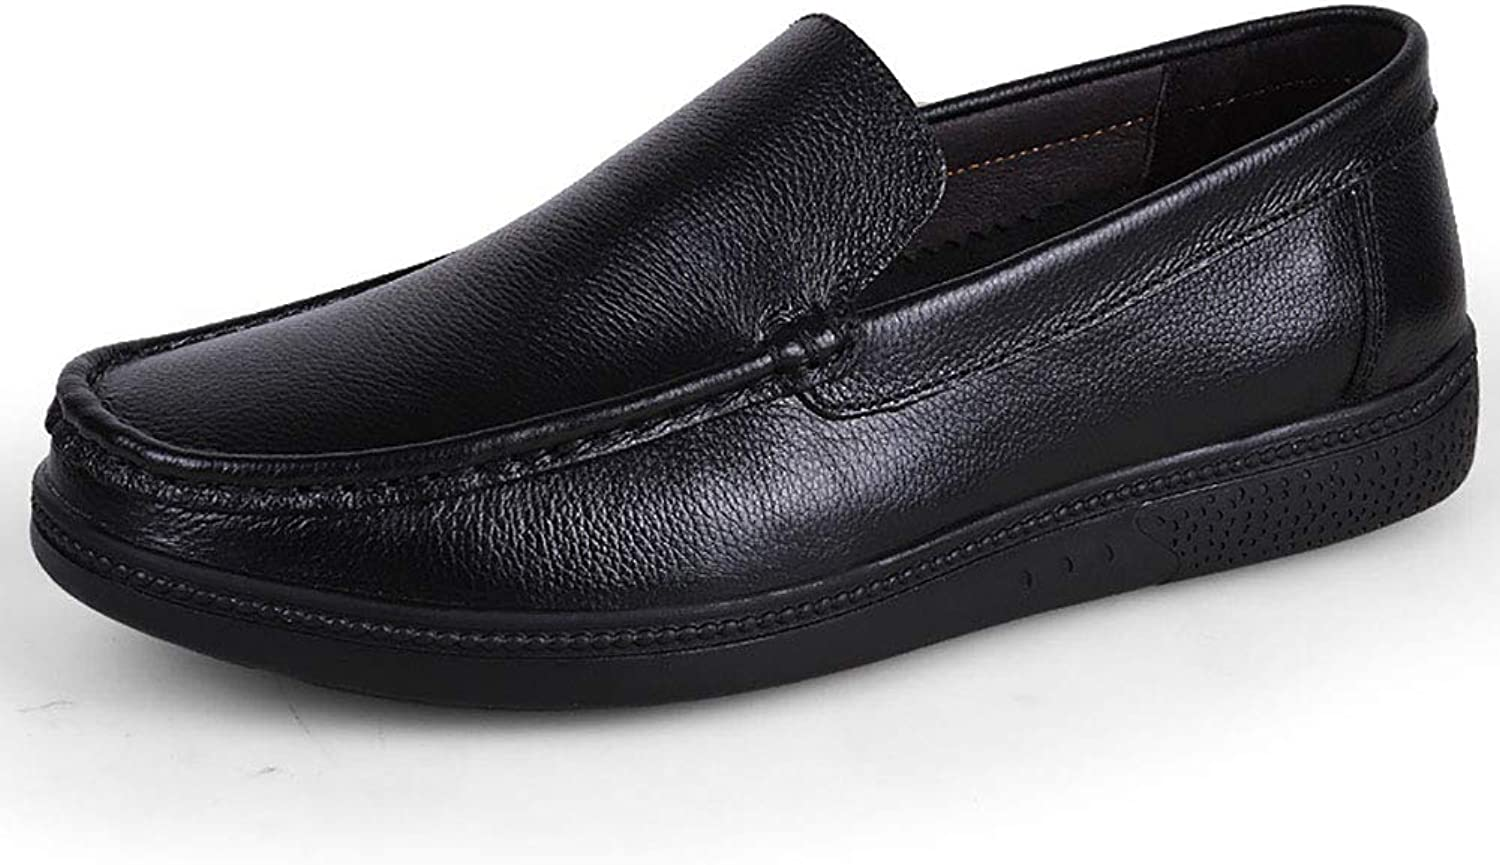 Men's shoes Cowhide Spring Fall Comfort Loafers Oxfords Walking shoes Waterproof & Slip-Ons Black Brown Party & Evening